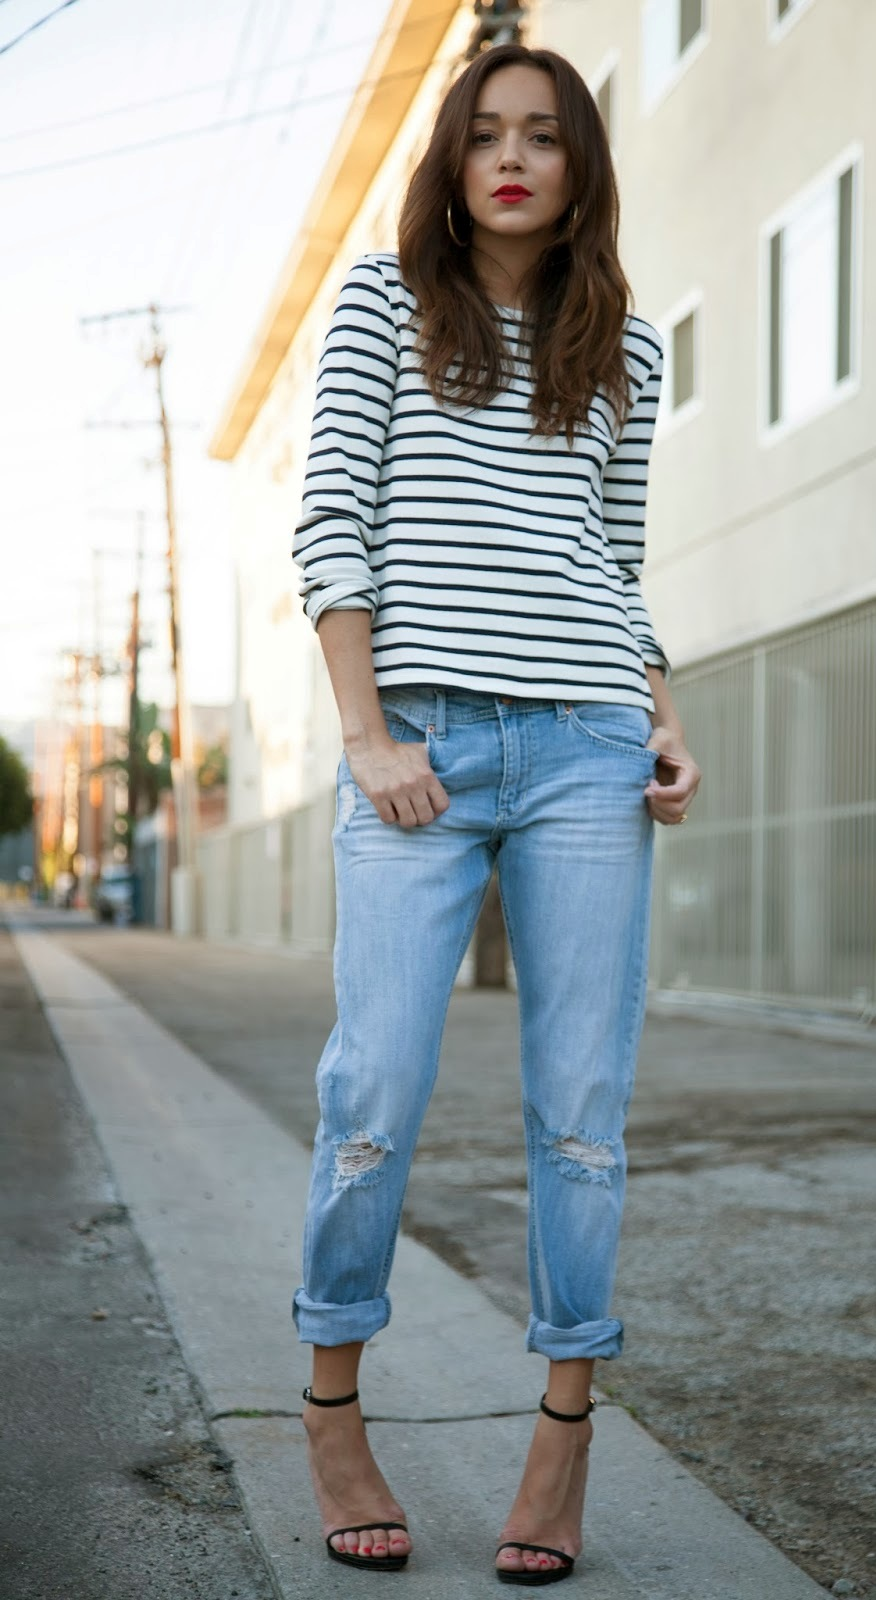 stripes-and-boyfriend-jeans stripes-and-boyfriend-jeans